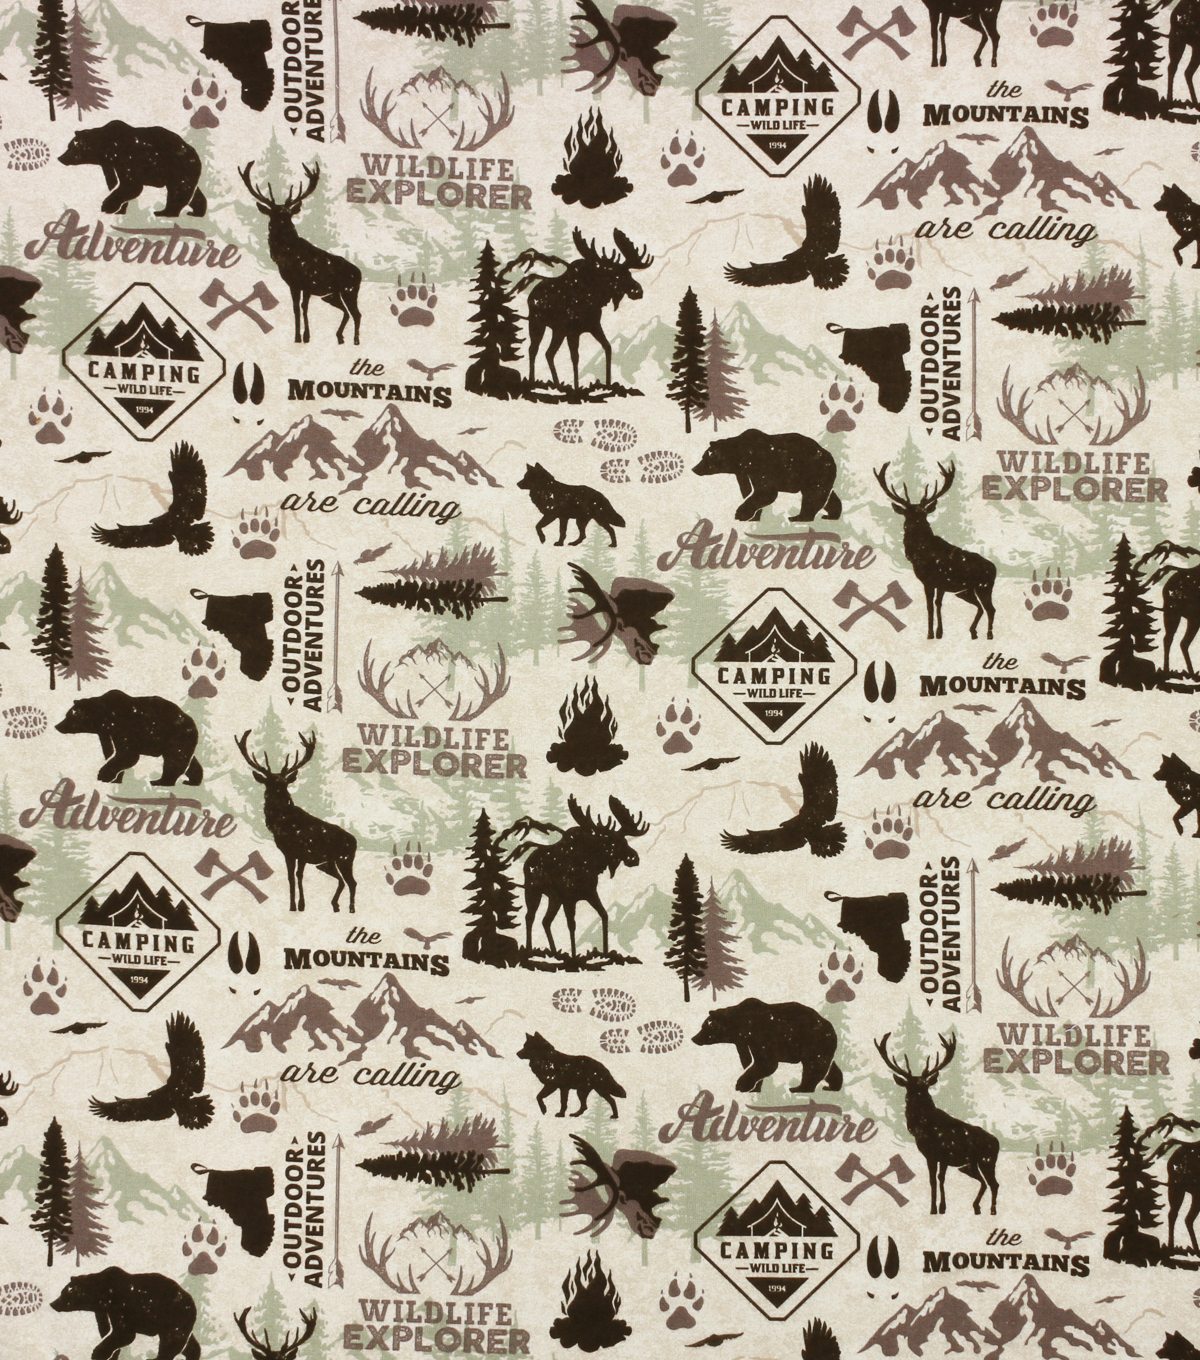 Super Snuggle Flannel Fabric-Wildlife Adventure